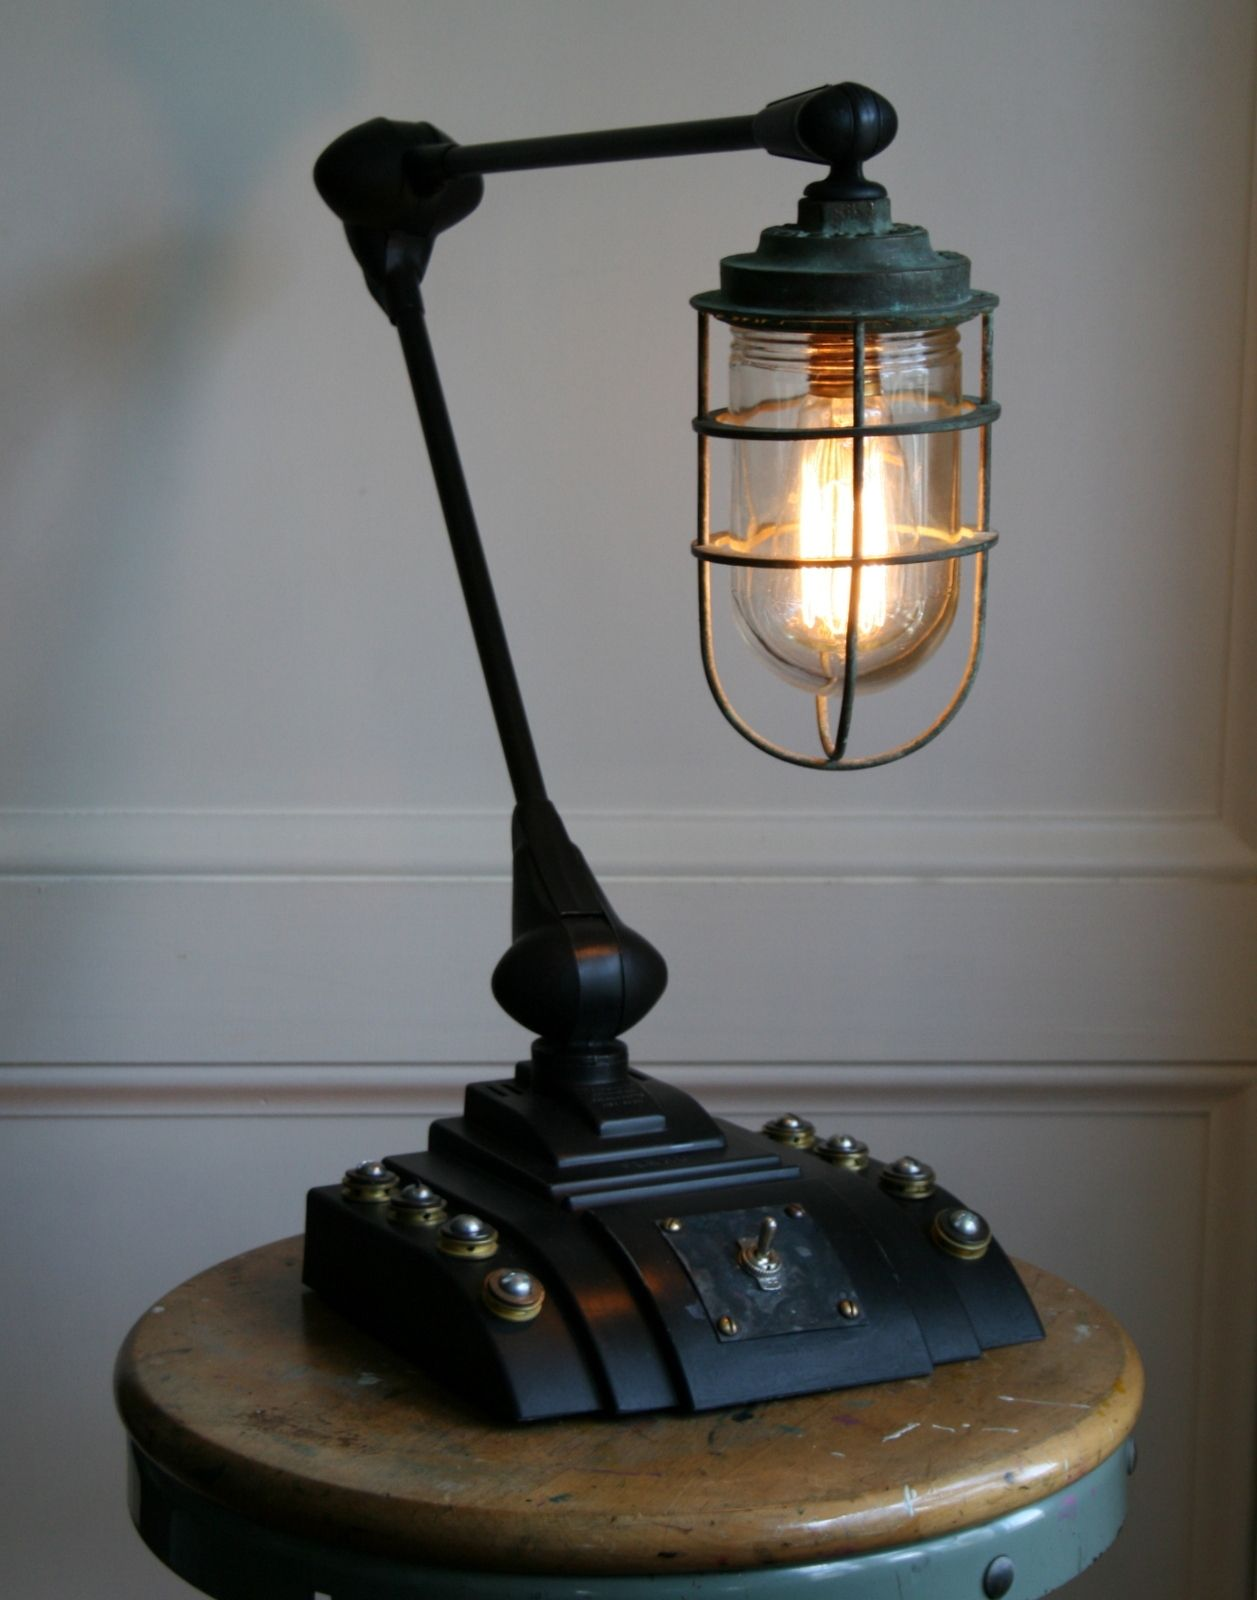 Antique desk lamps -  Via Vtg Antique Industrial Steampunk Desk Lamp Upcycled Machine Age Light Ebay